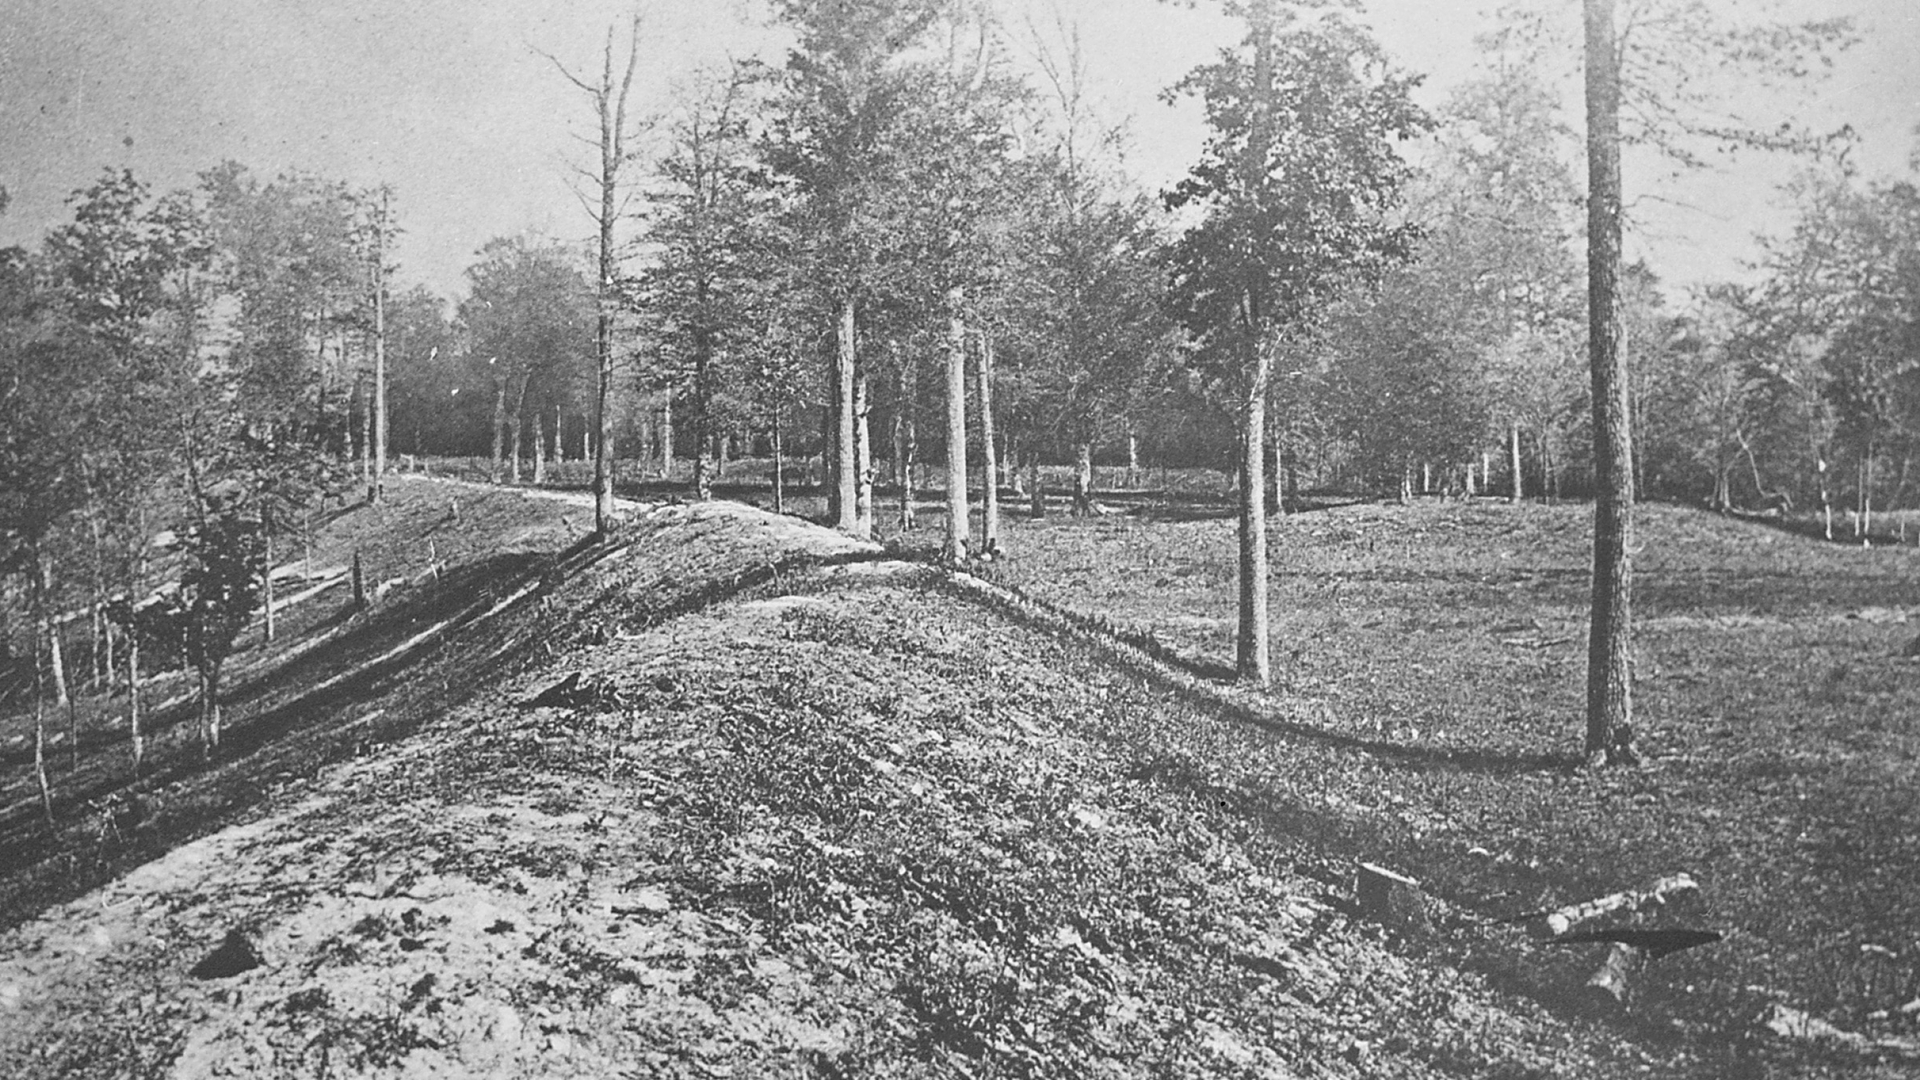 Mounds that form the Newark Earthworks. (Credit: The National Archives)